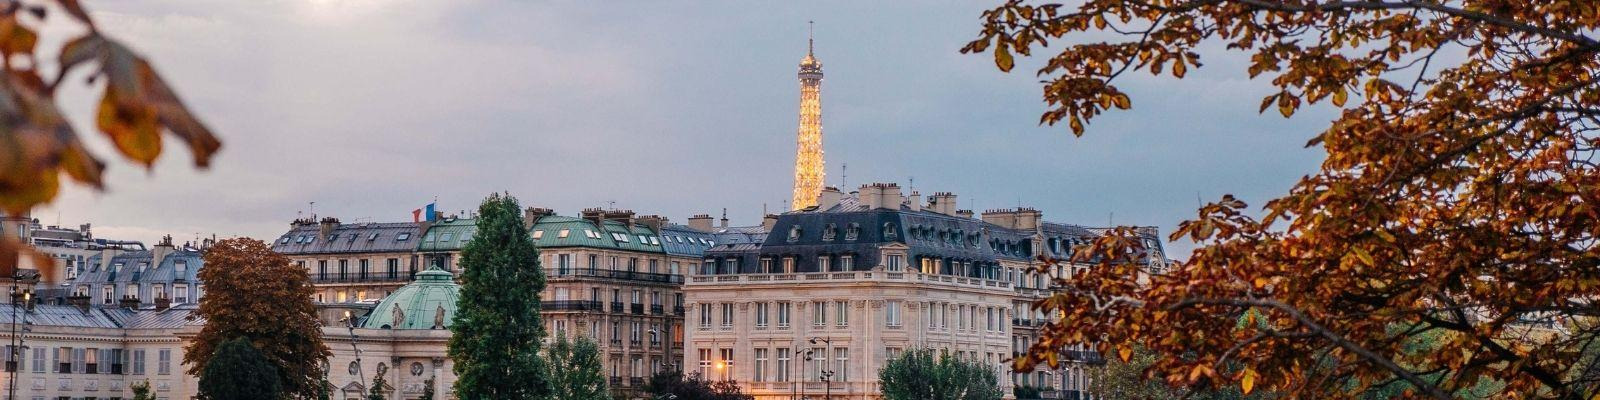 A shot of Paris, France from across the river with the Eiffel Tower twinkling in the distance.